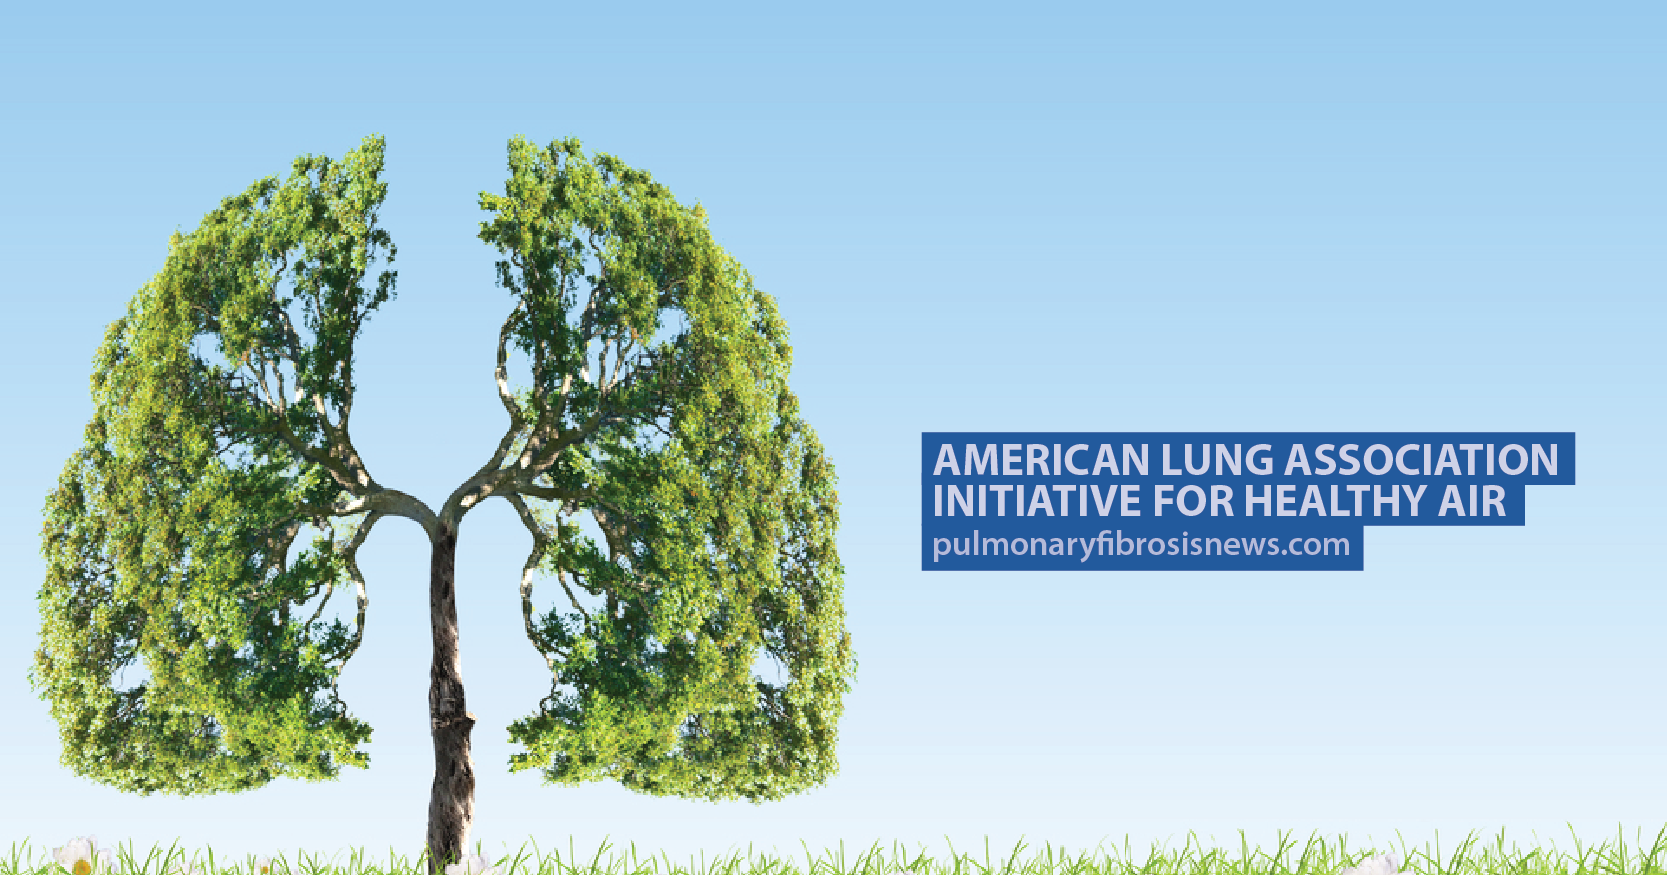 the american lung association Visual culture and health posters anti-smoking campaigns: visuals  american lung association, 1977 poster slide 1 image world health organization.